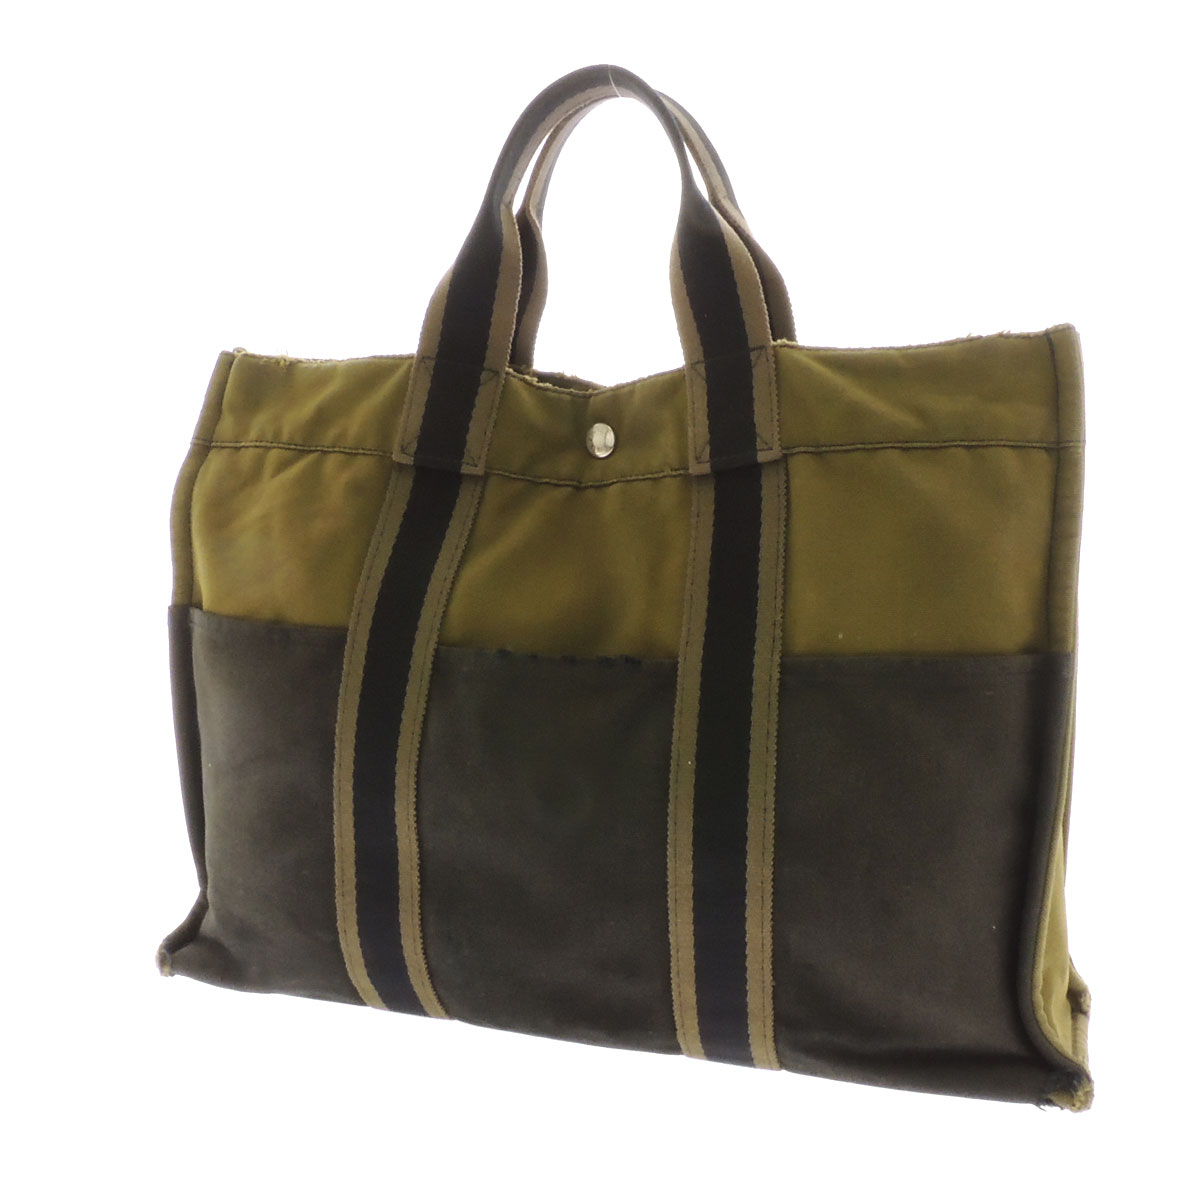 HERMES Sacher, to MM tote bag canvas unisex